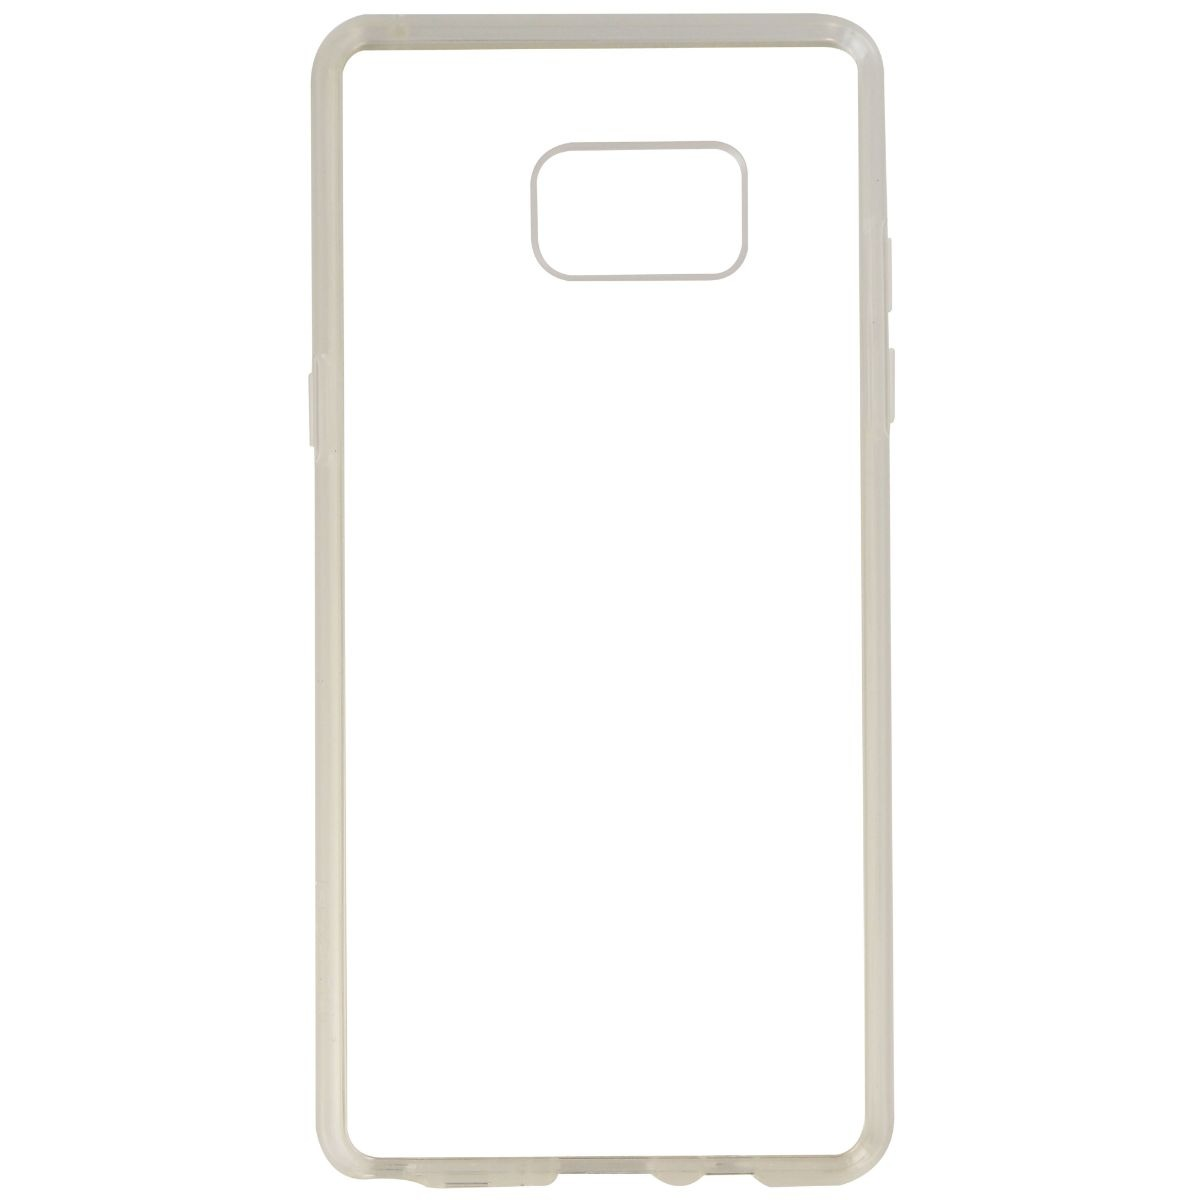 Skech Crystal Series Hard shell Case for Galaxy Note 7 Smartphone - Clear